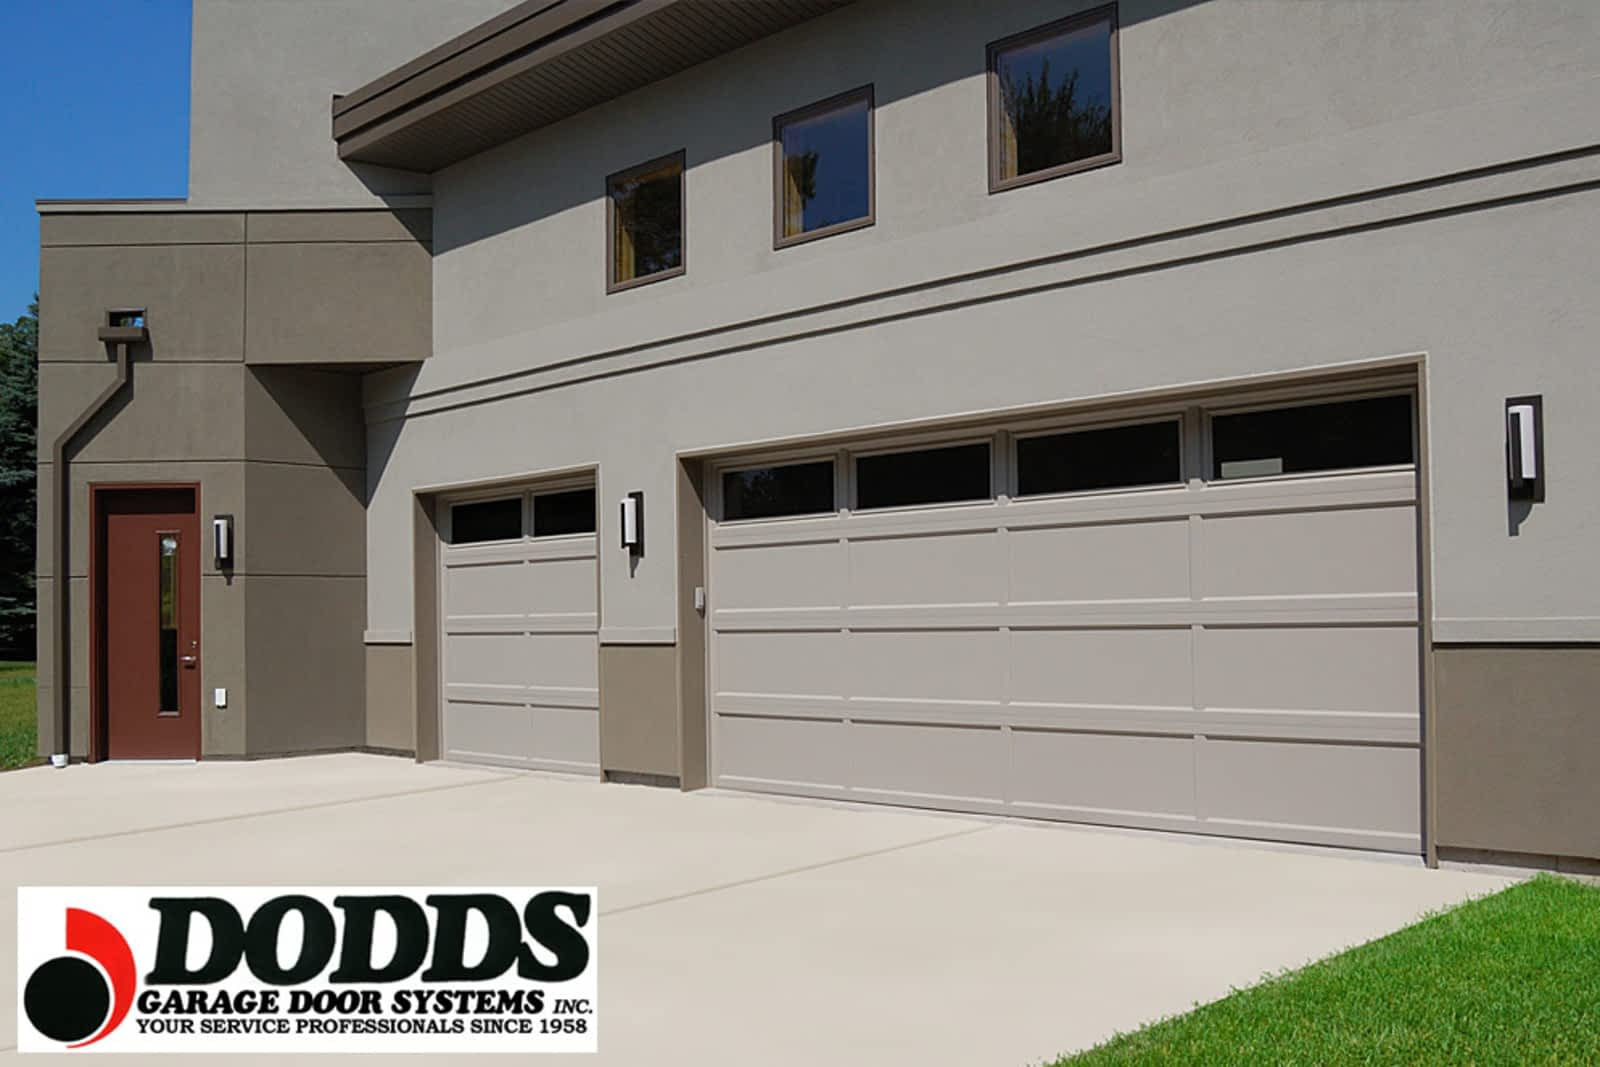 Exceptional Dodds Garage Door Systems Inc   Opening Hours   Mississauga   Cooksville, ON